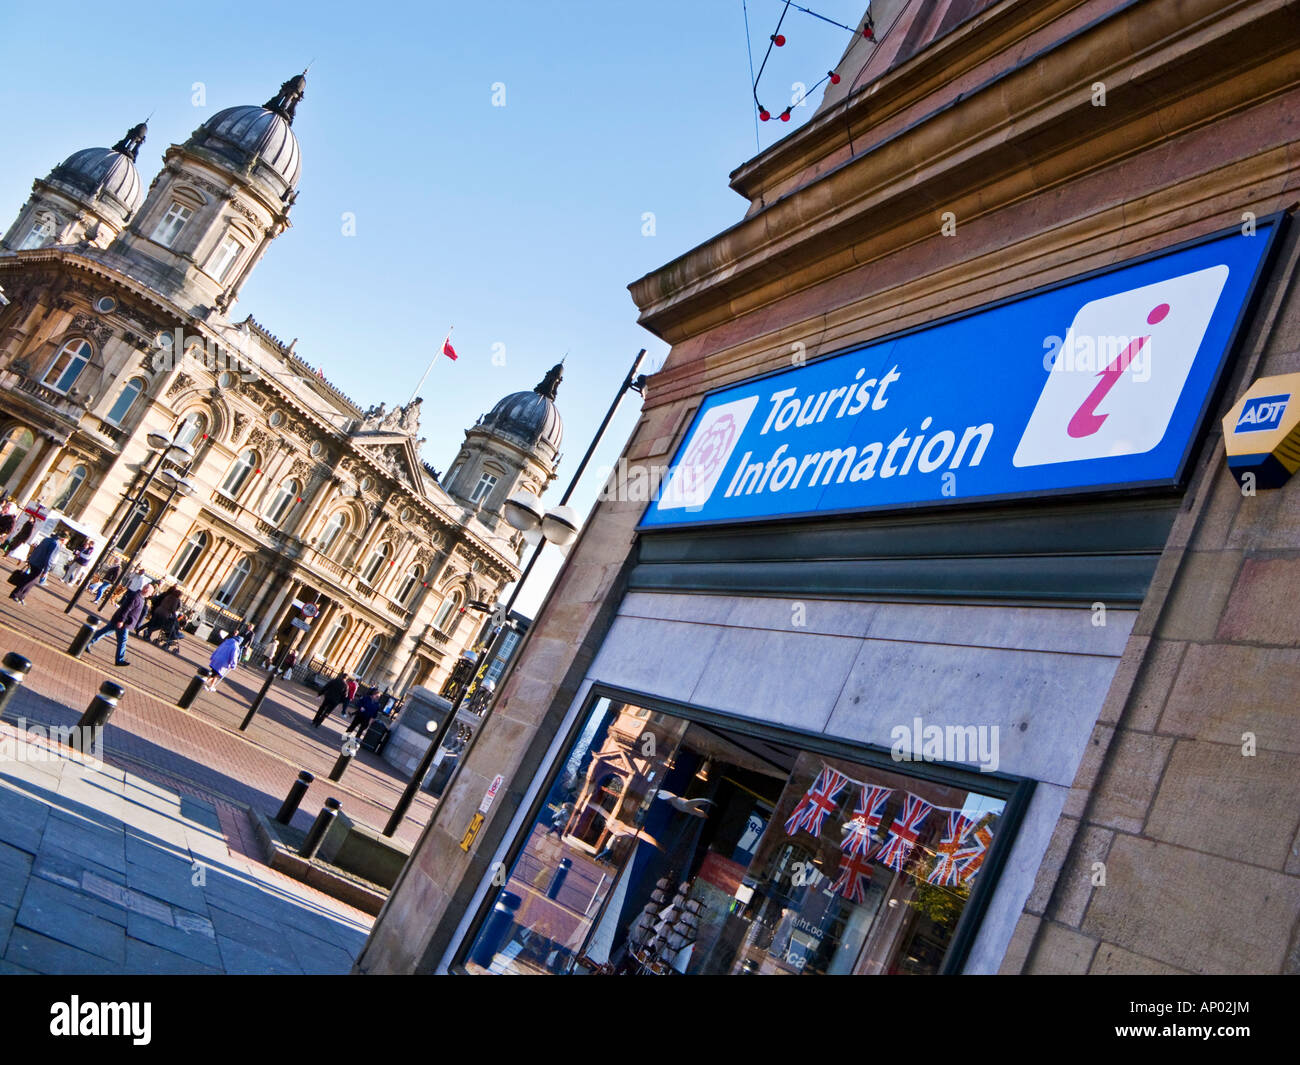 Tourist information office at City Hall Victoria Square in Hull, East Yorkshire, England, UK with the Maritime Museum - Stock Image